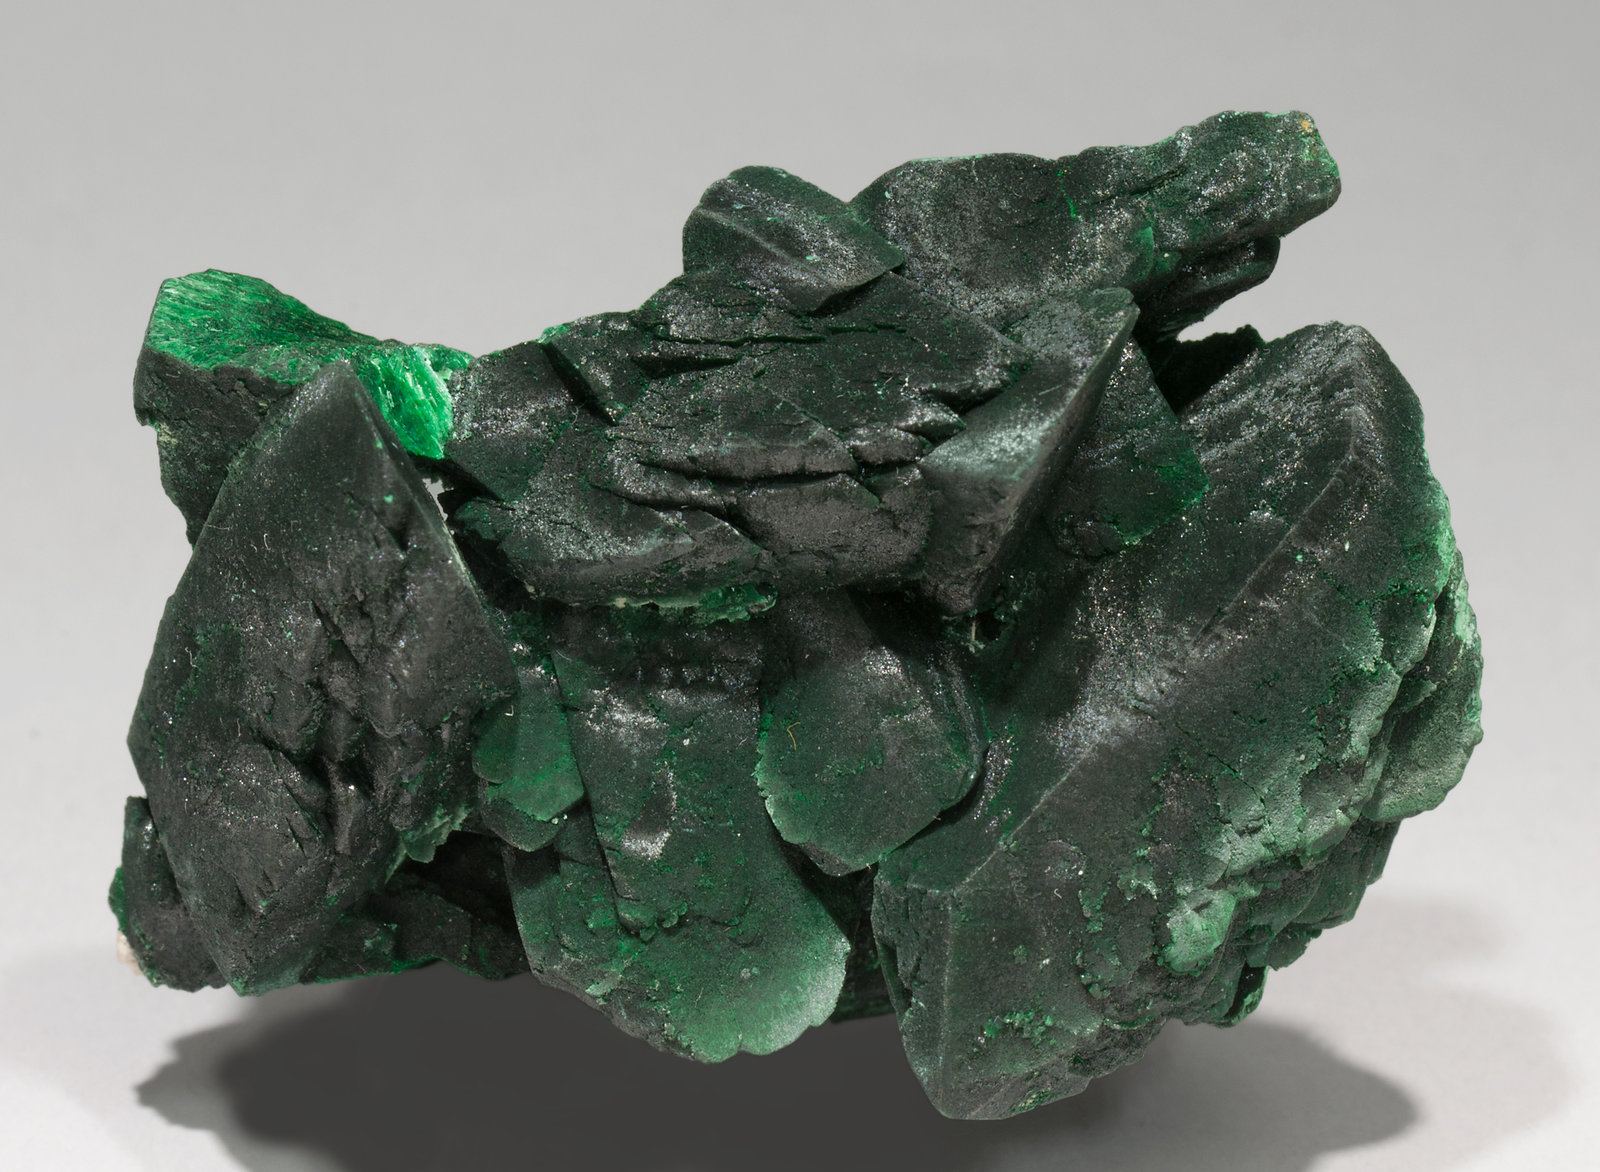 specimens/s_imagesX3/Malachite-TA67X3f.jpg